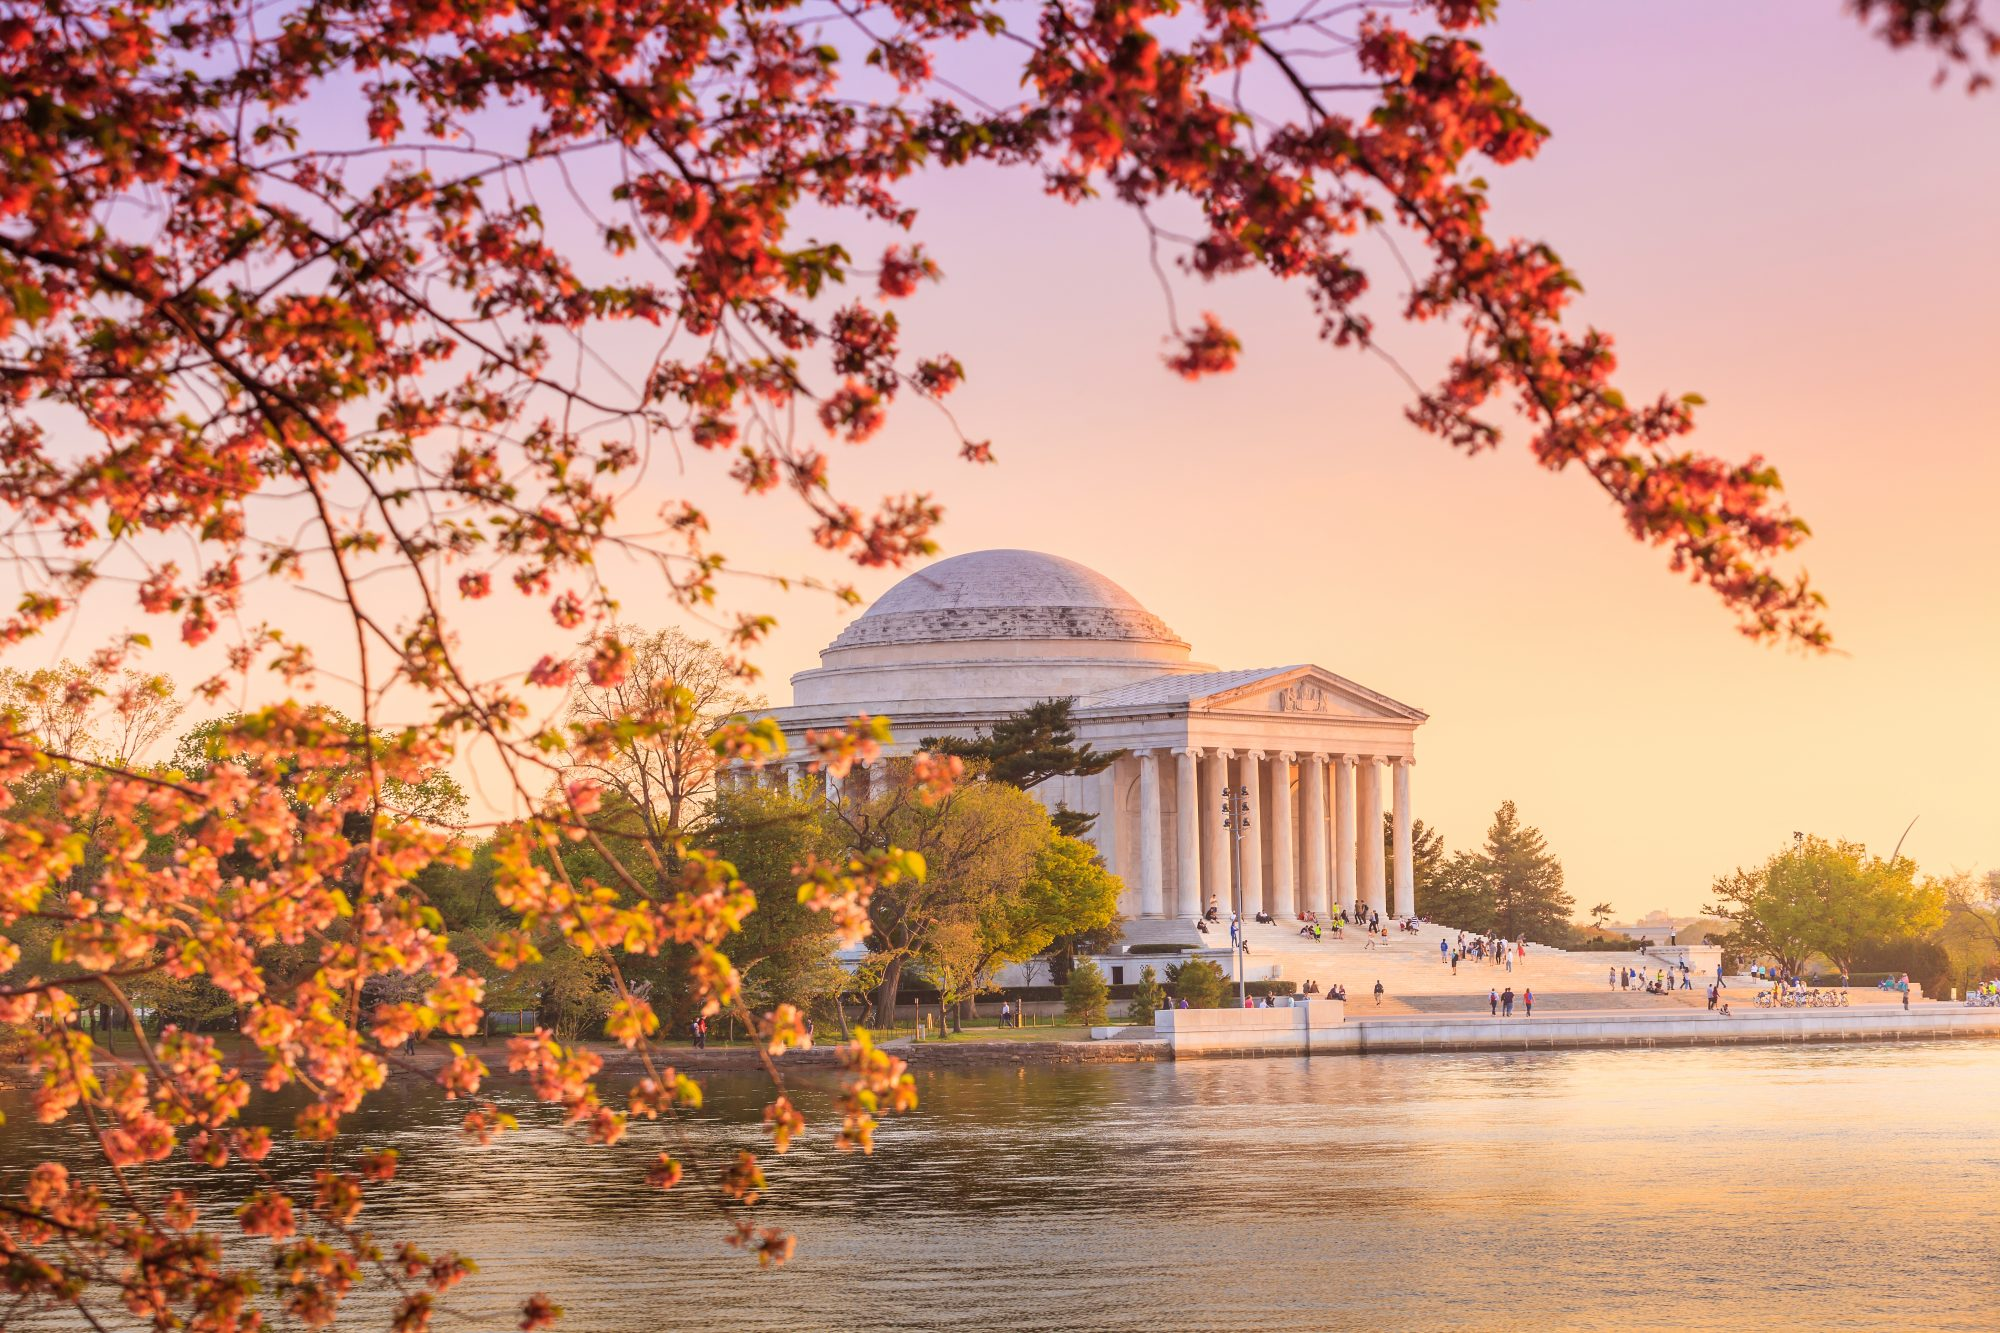 jefferson_memorial_washington_dc_usa